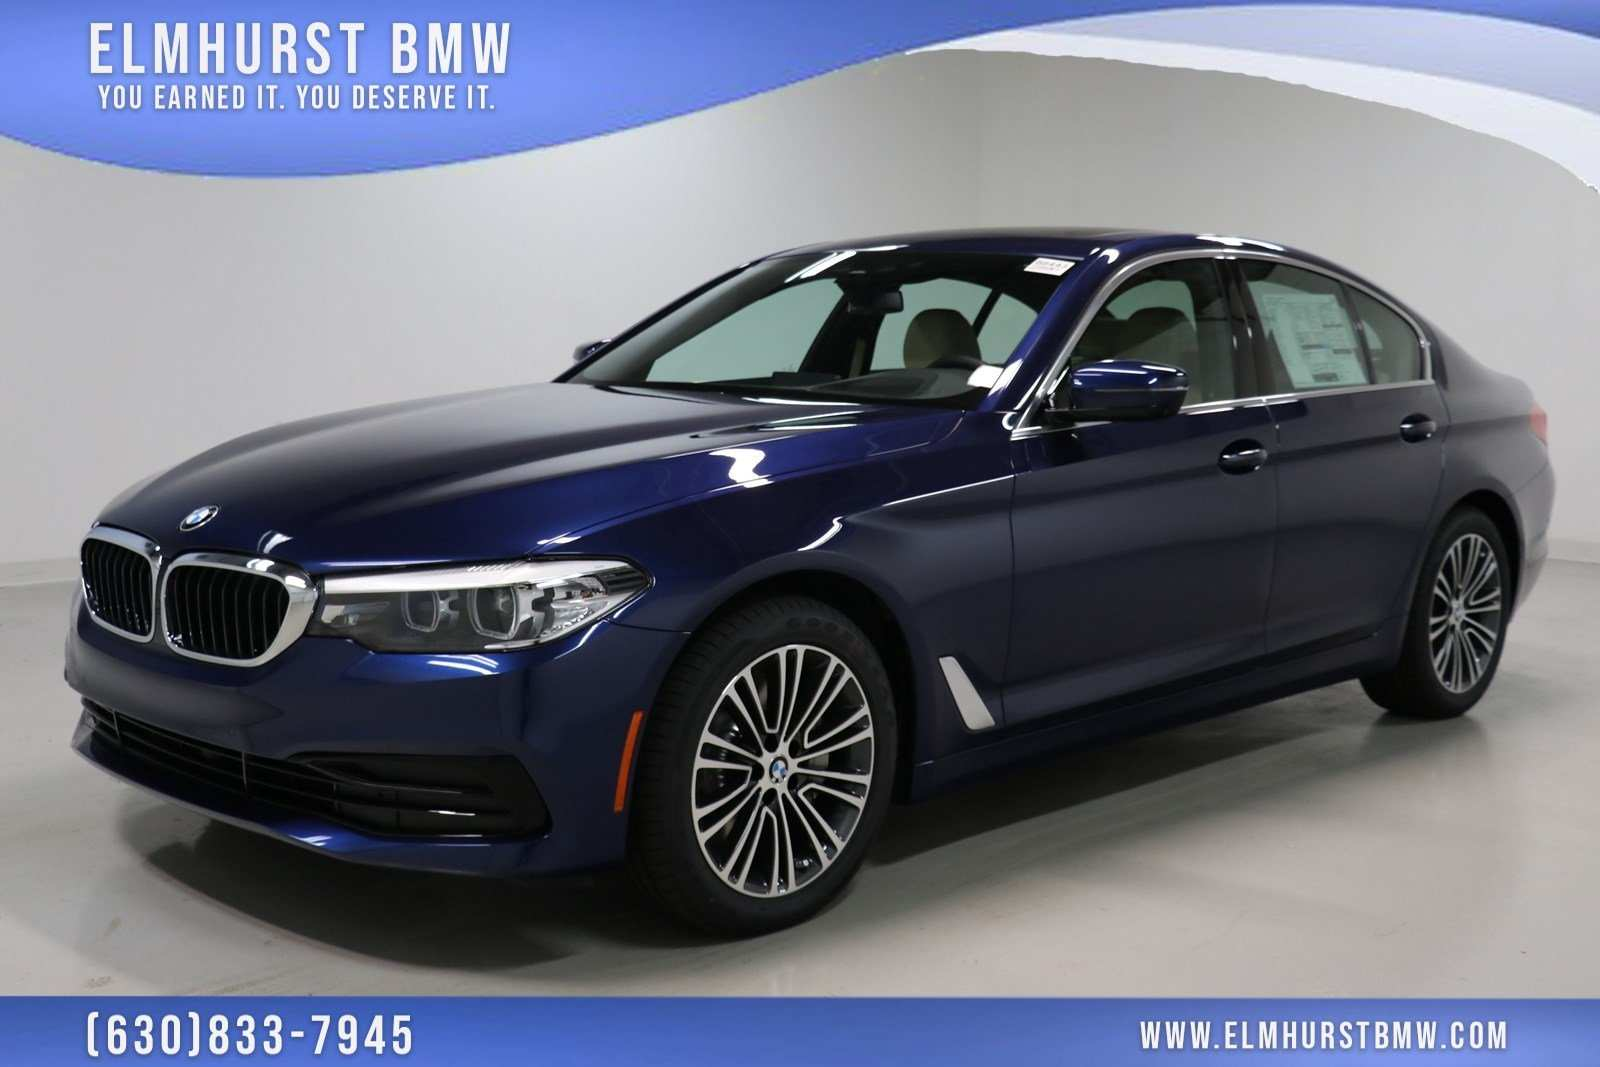 29 Great 2019 Bmw 5 Series Ratings for 2019 Bmw 5 Series